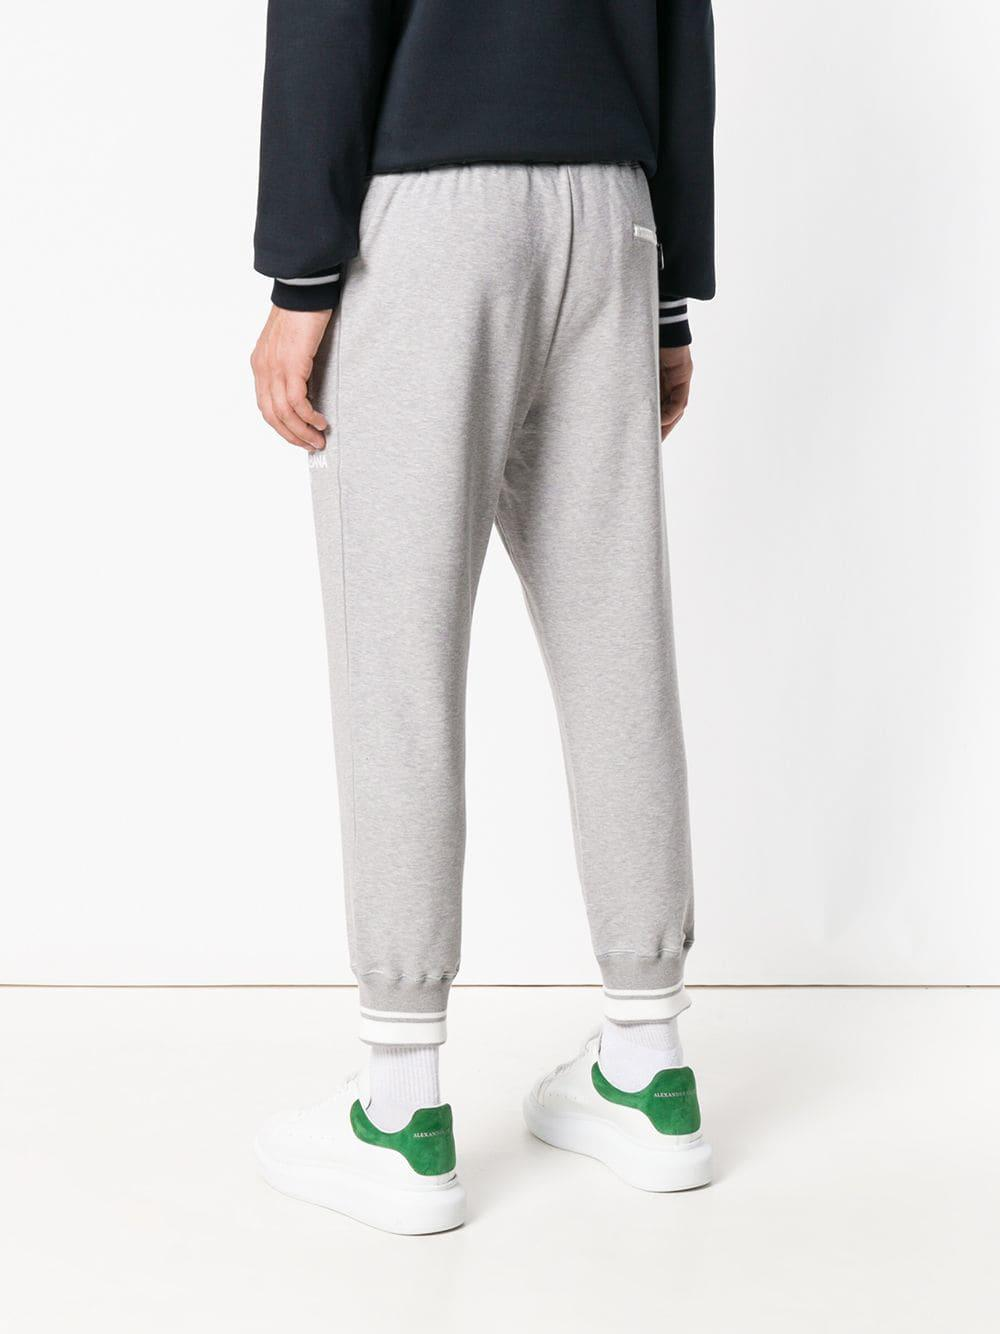 Dolce & Gabbana Cotton Sports Trousers in Grey (Grey) for Men